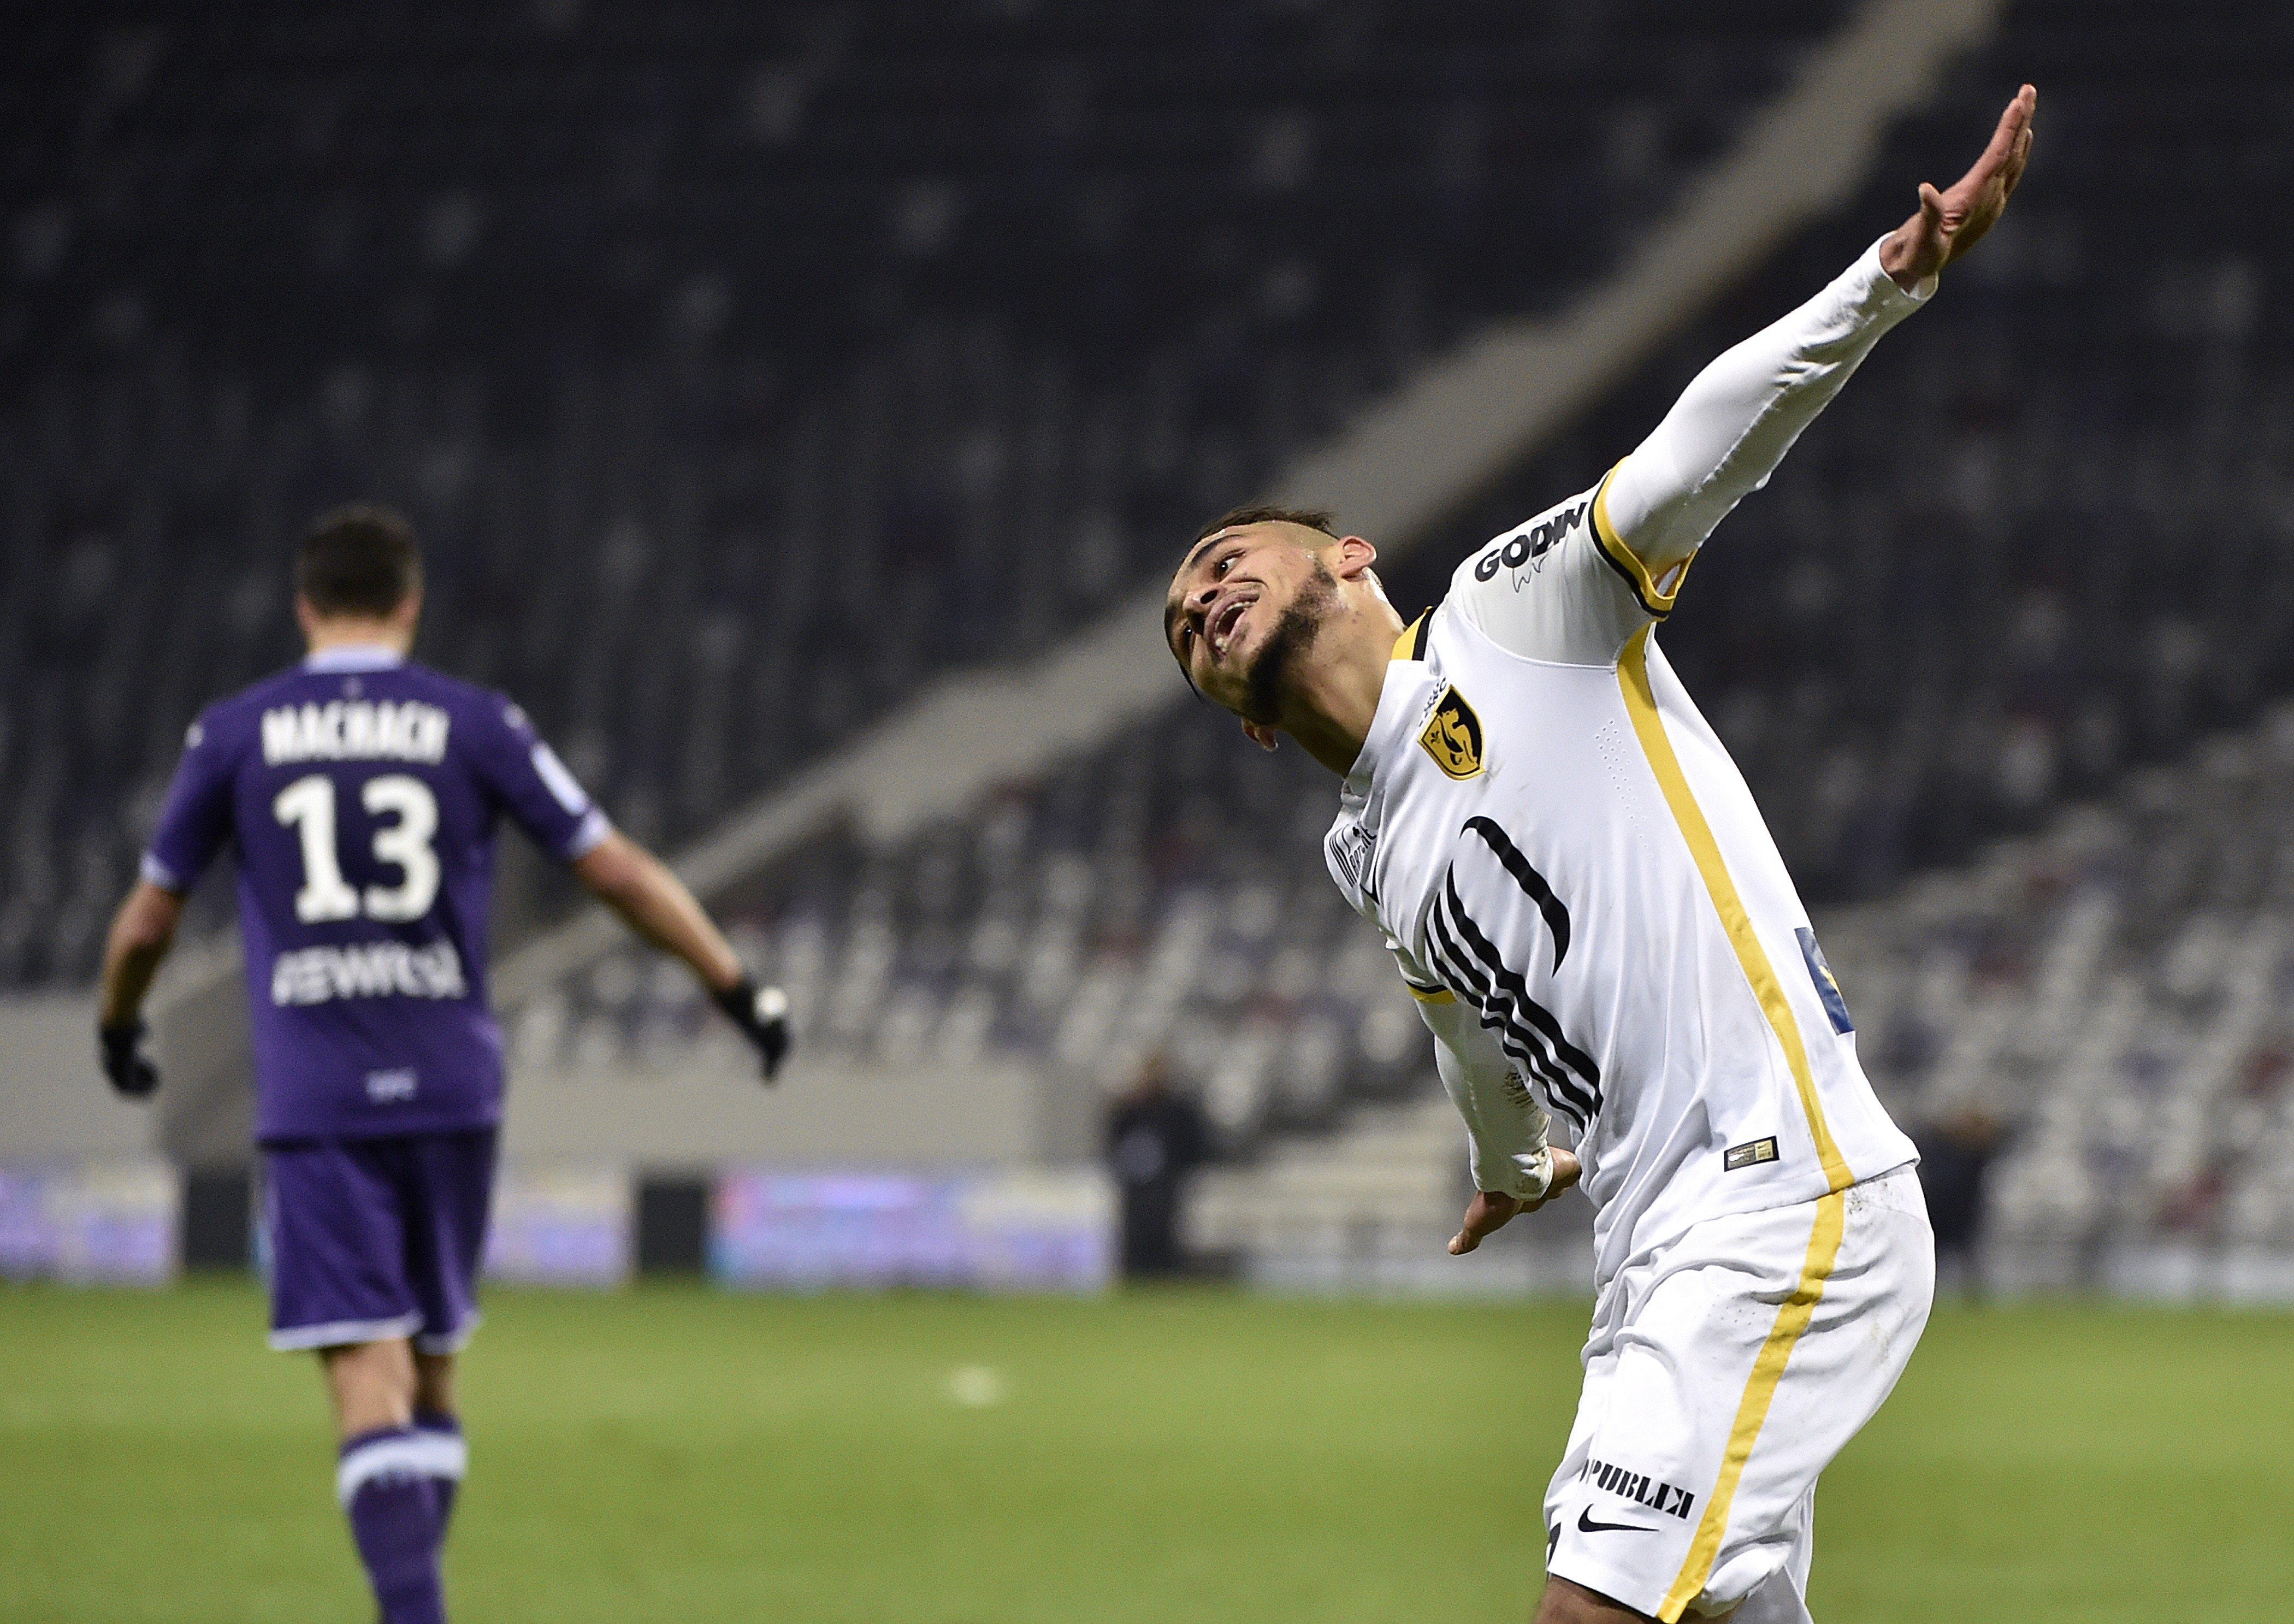 Lille's French midfielder Sofiane Boufal celebrates after scoring a goal during the French L1 football match between Toulouse (TFC) and Lille (LOSC) on December 19, 2015 at the Municipal Stadium in Toulouse, southern france. AFP PHOTO / PASCAL PAVANI / AFP / PASCAL PAVANI (Photo credit should read PASCAL PAVANI/AFP/Getty Images)